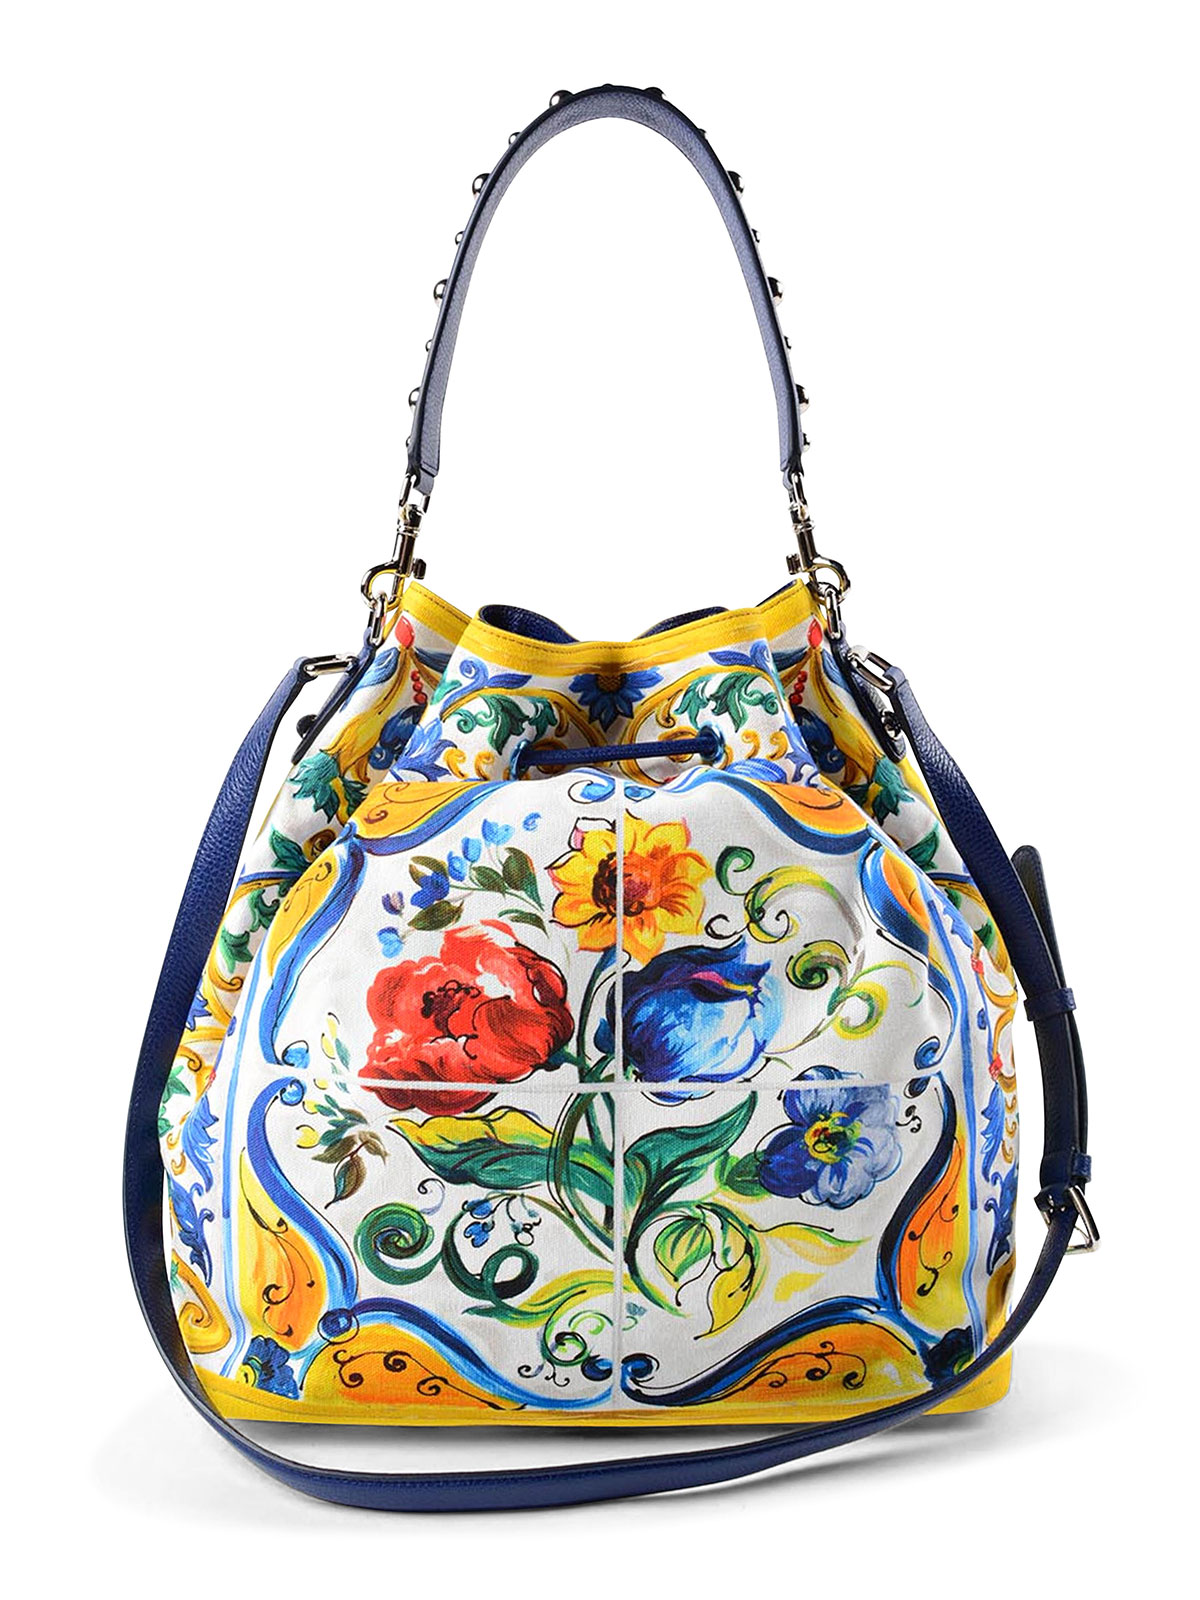 iKRIX DOLCE   GABBANA  Bucket bags - Maiolica canvas bucket bag 6284c03400f63